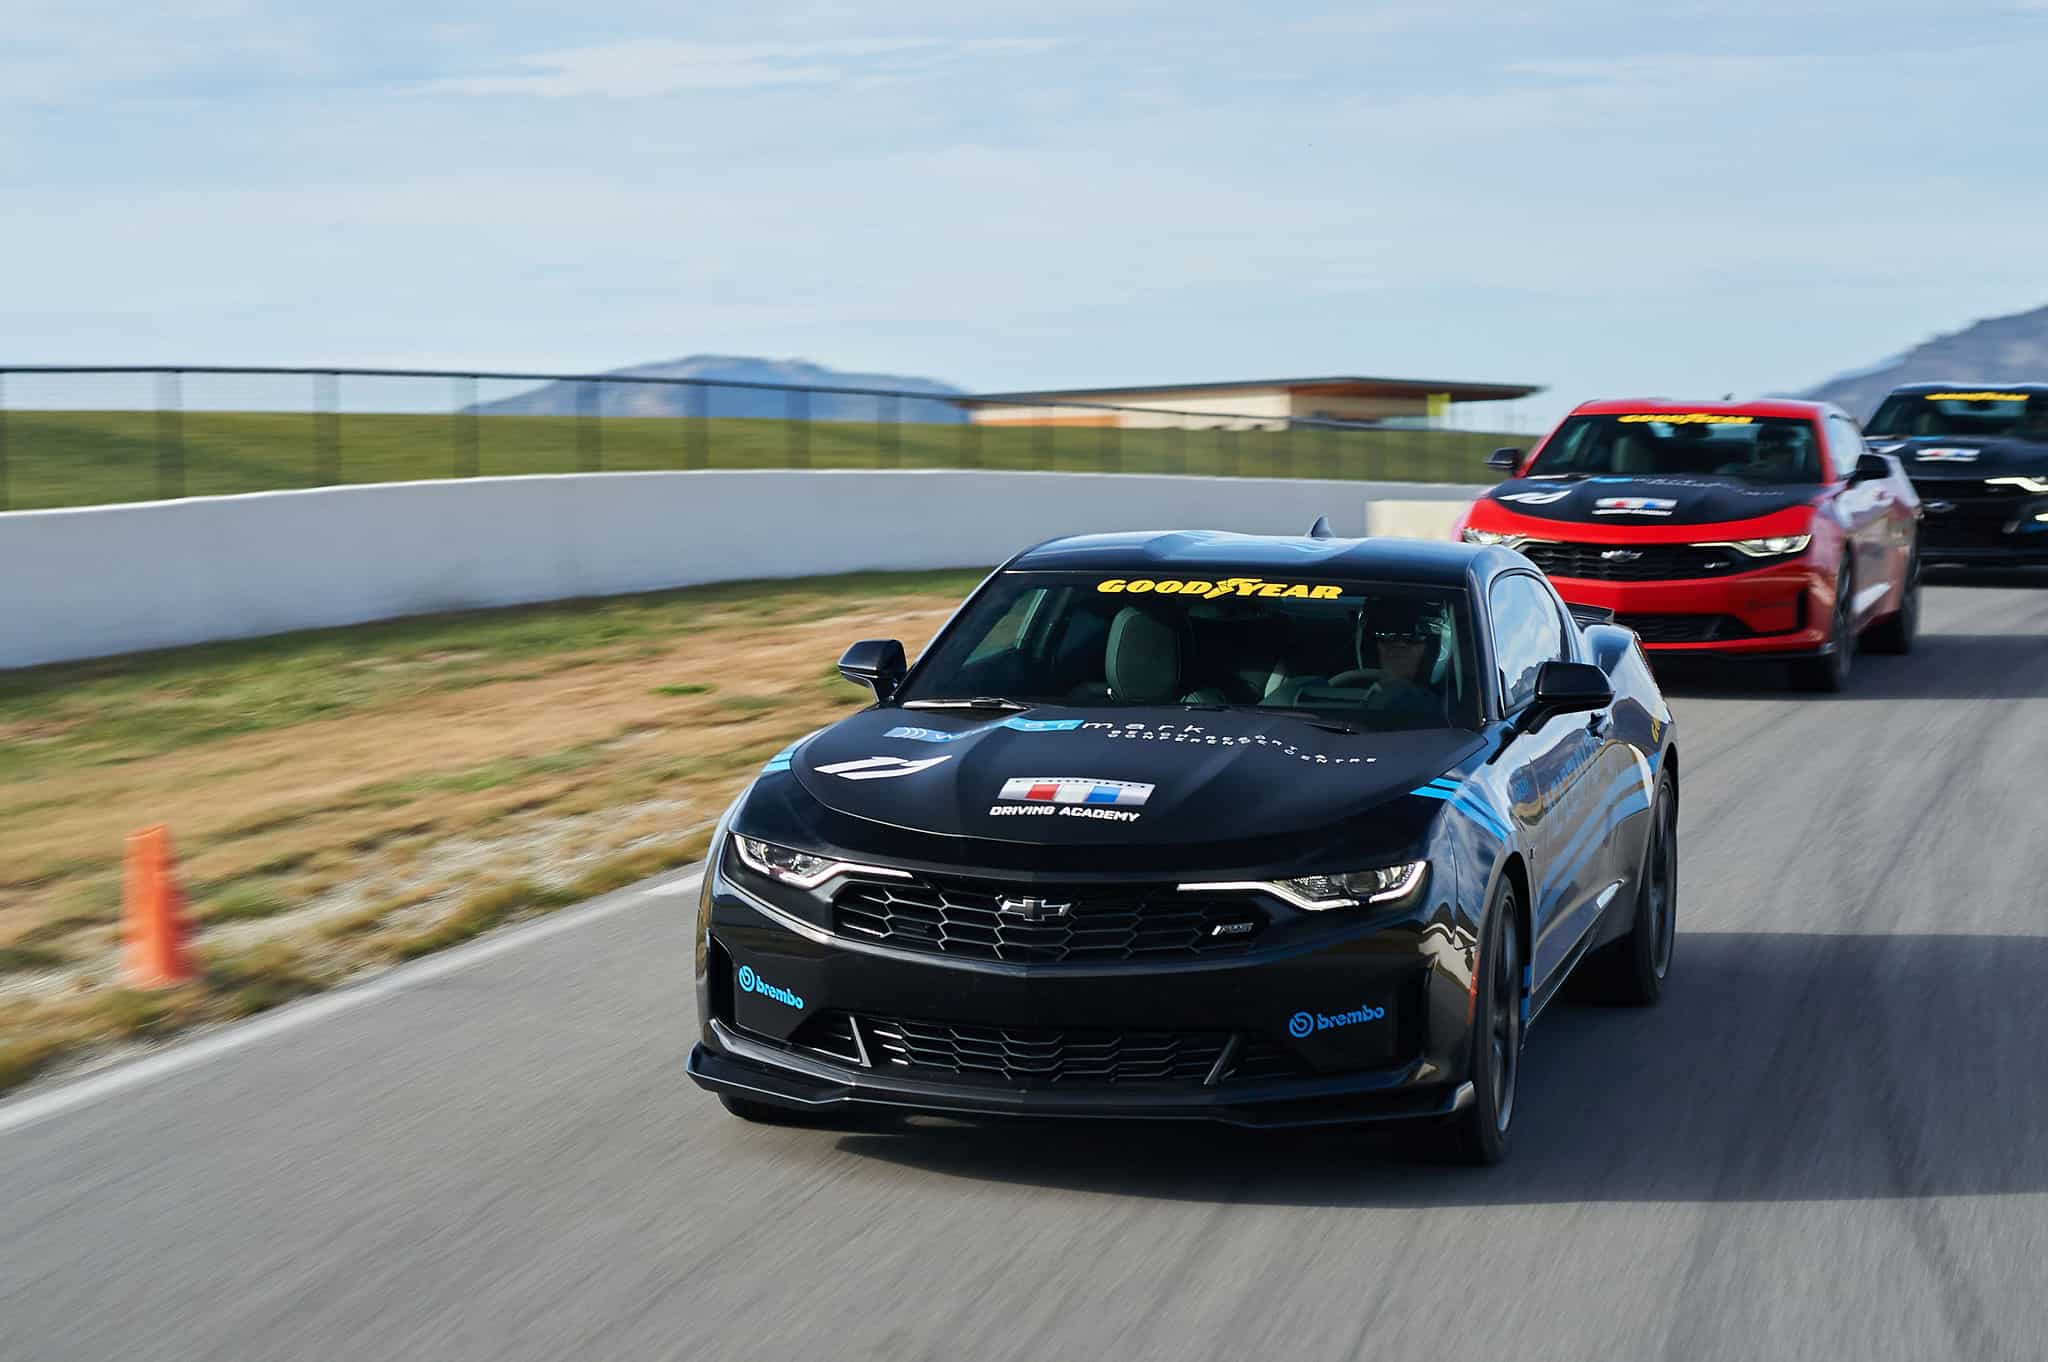 Media Release: Official Launch of the Camaro Driving Academy